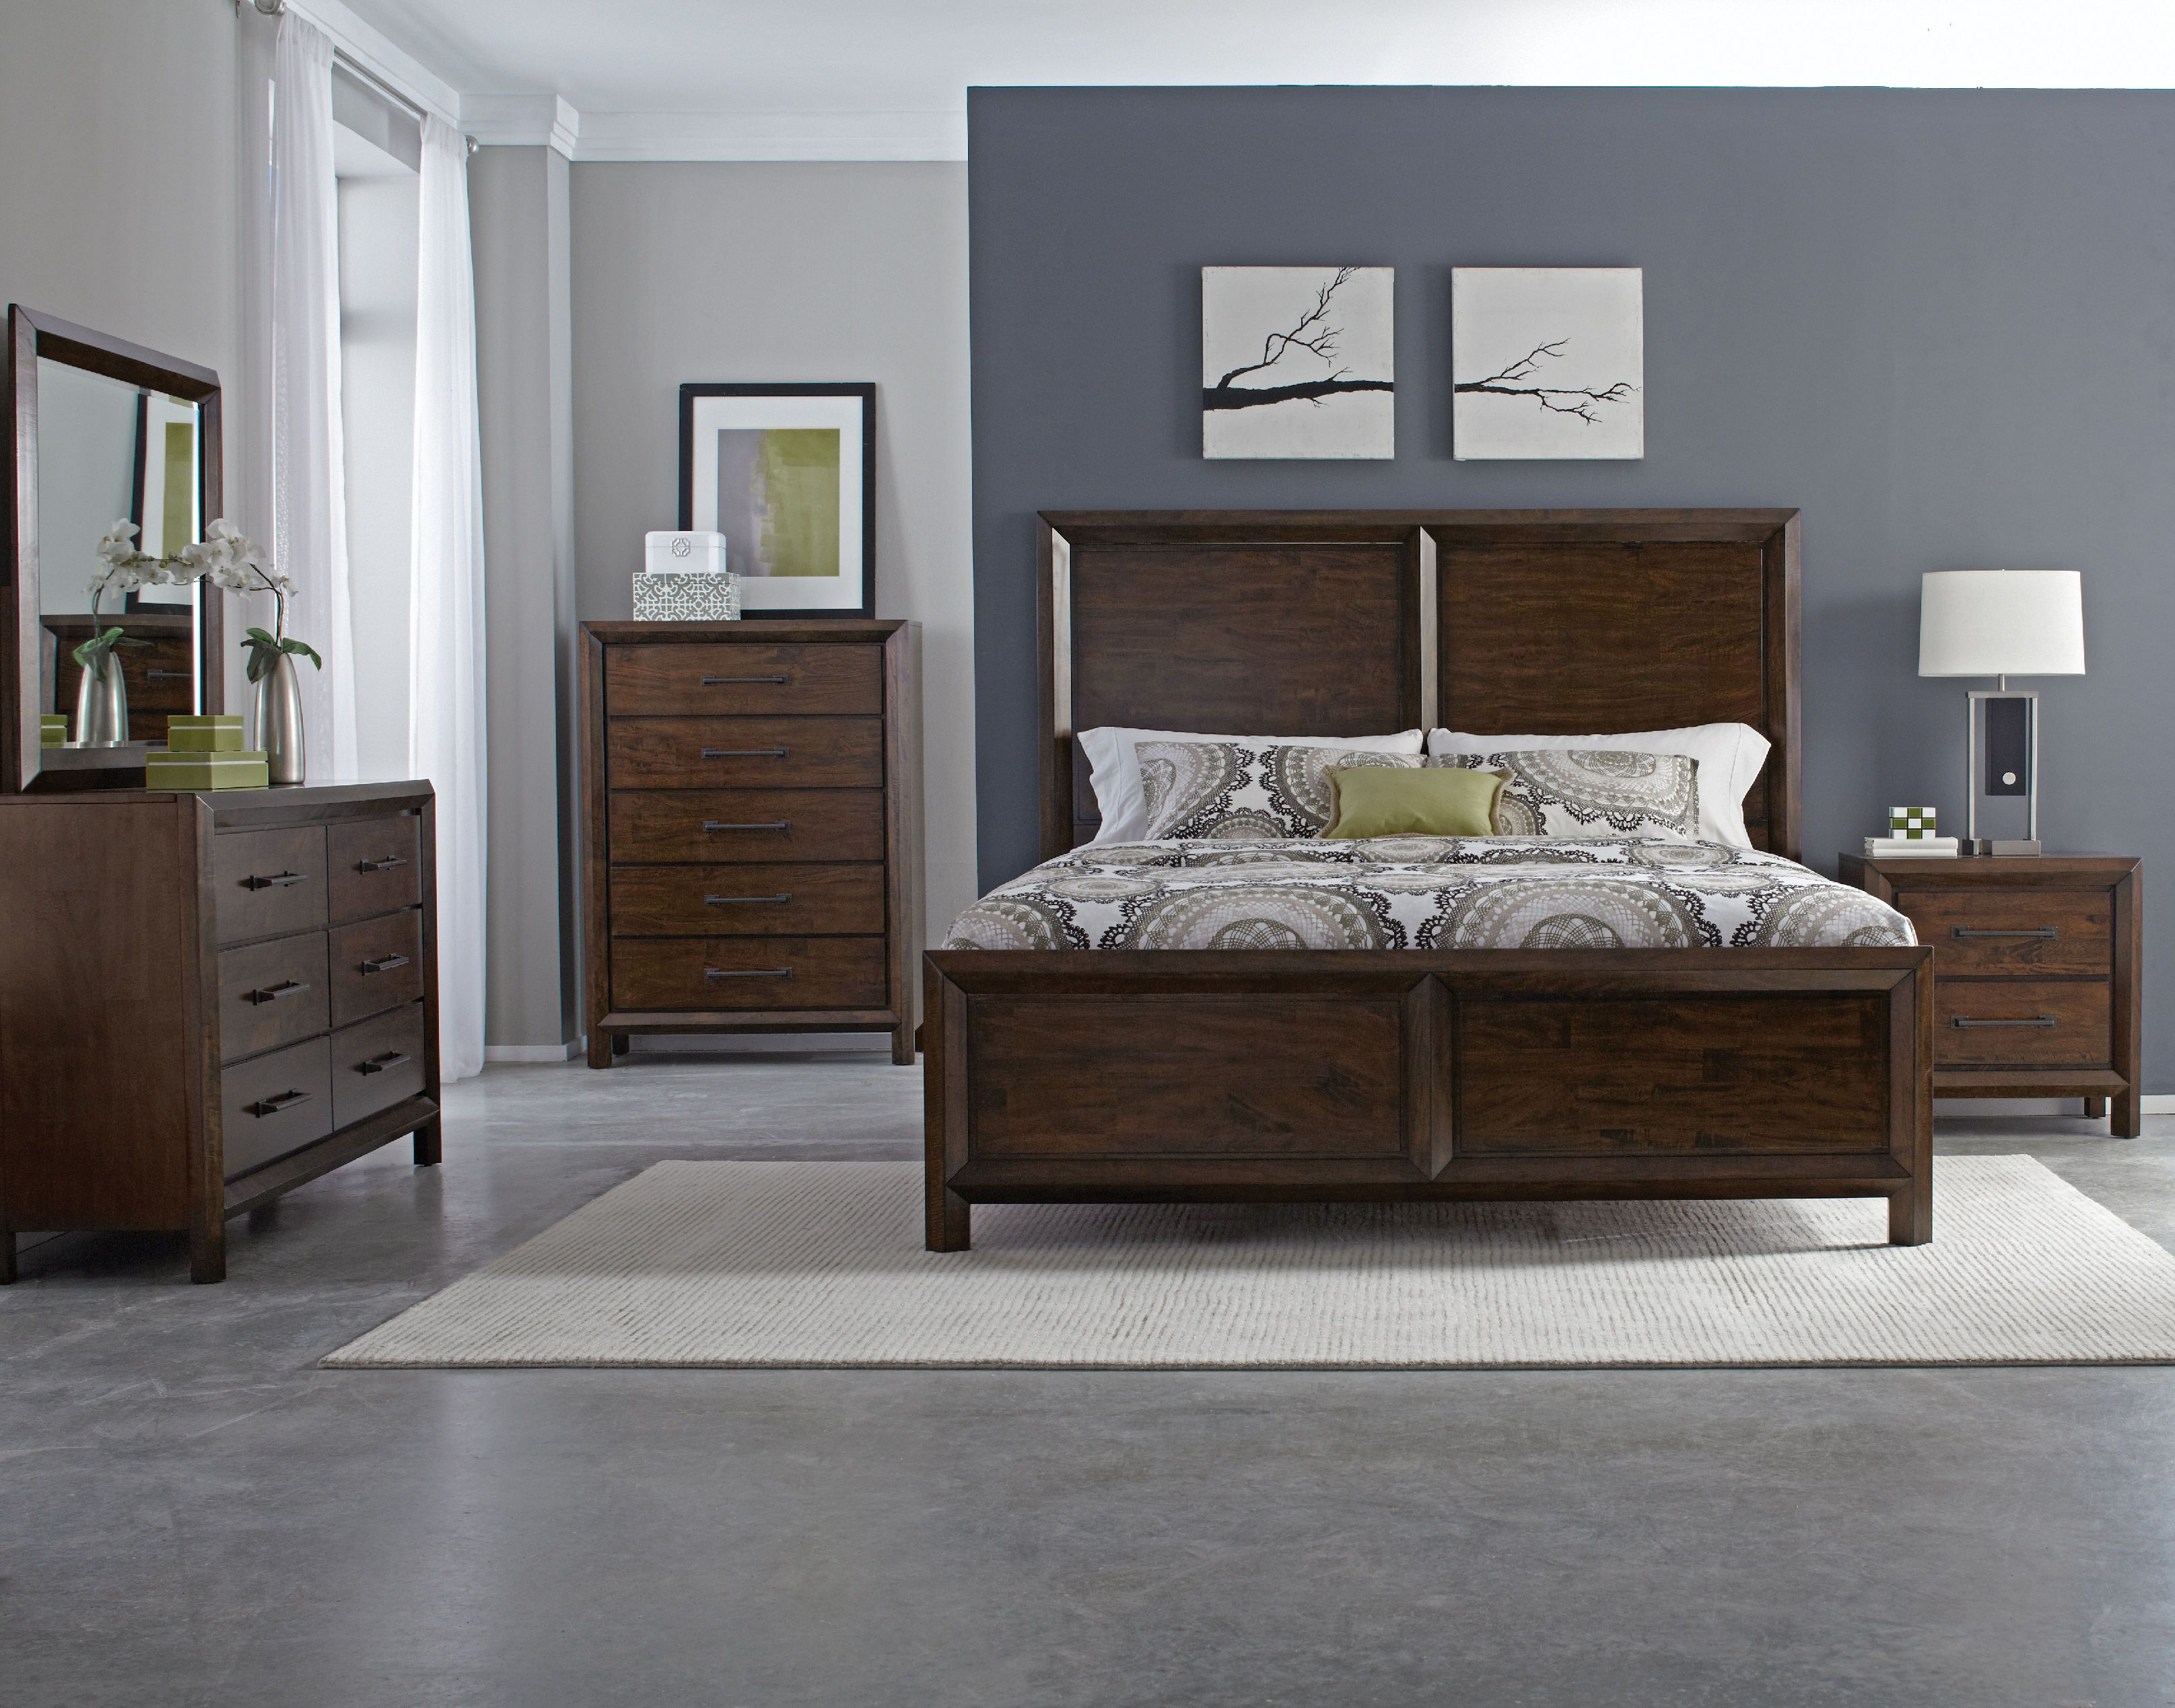 images about Klaussner Bedroom Furniture on Pinterest